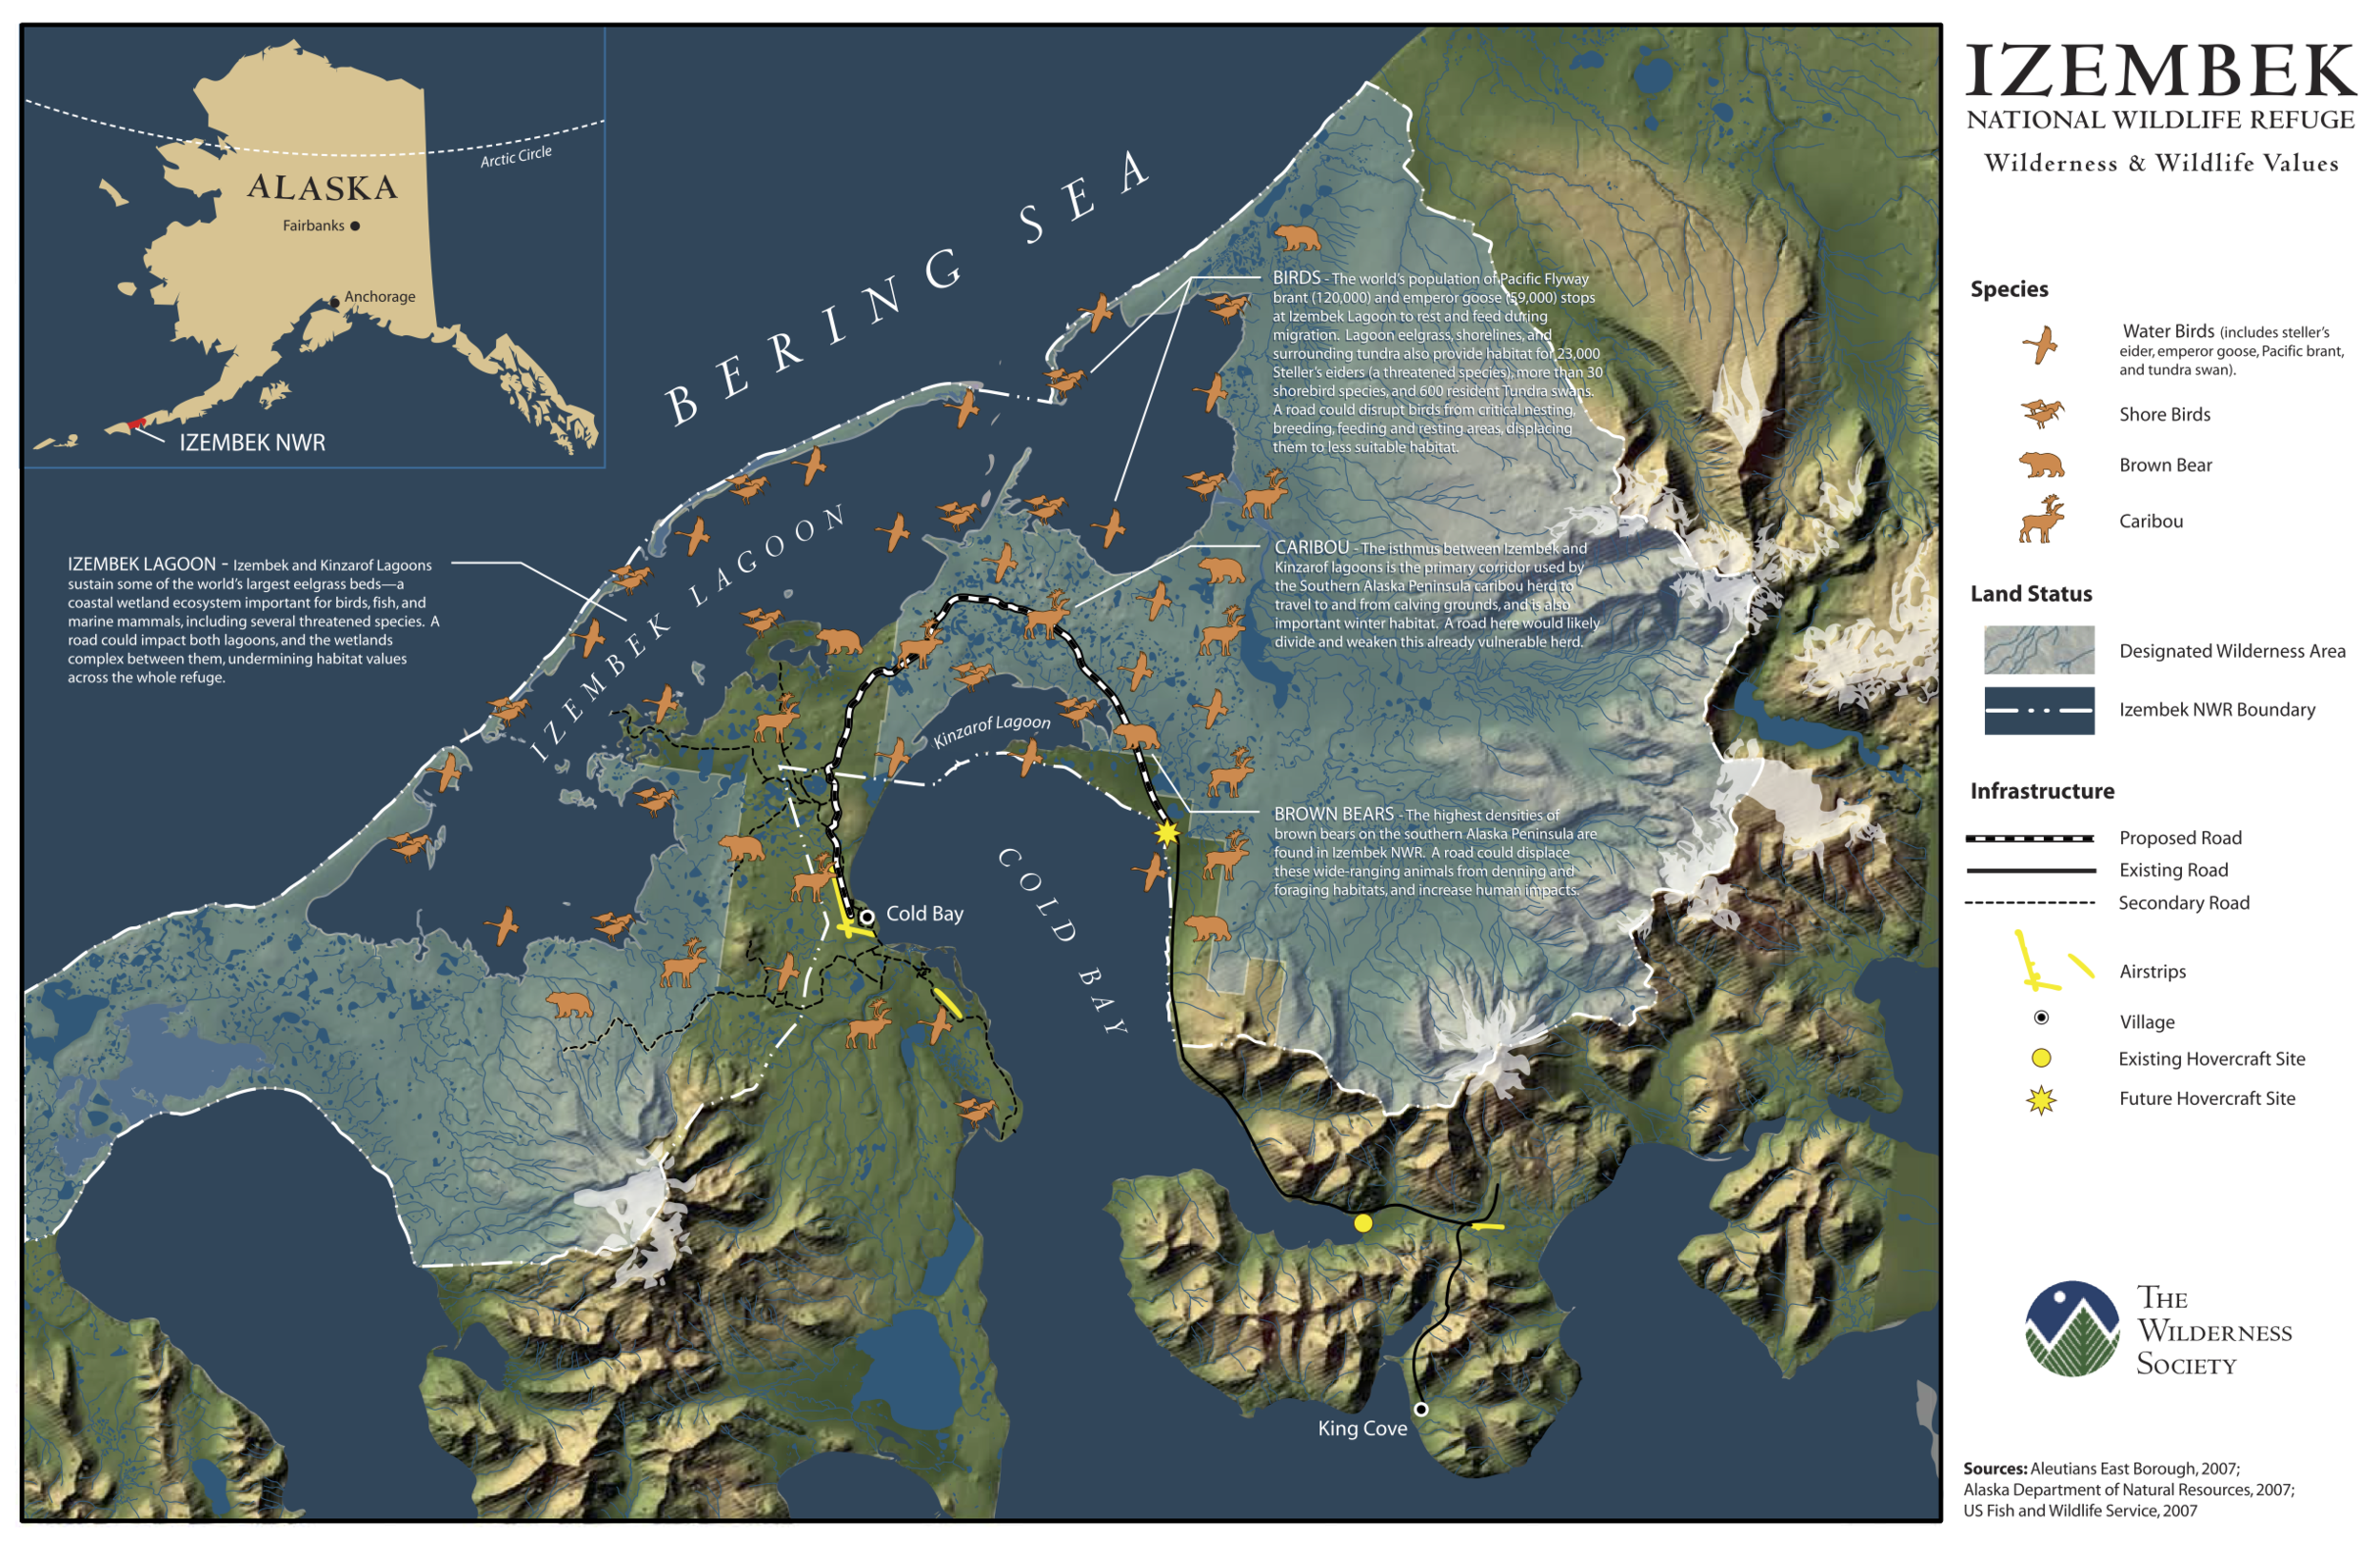 Map 2. The Izembek National Wildlife Refuge and Wilderness, shown with annotations of important concentrations of water birds, shorebirds, brown bears, and caribou, and the route of the proposed road (click on source for a larger image). Source: The Wilderness Society .